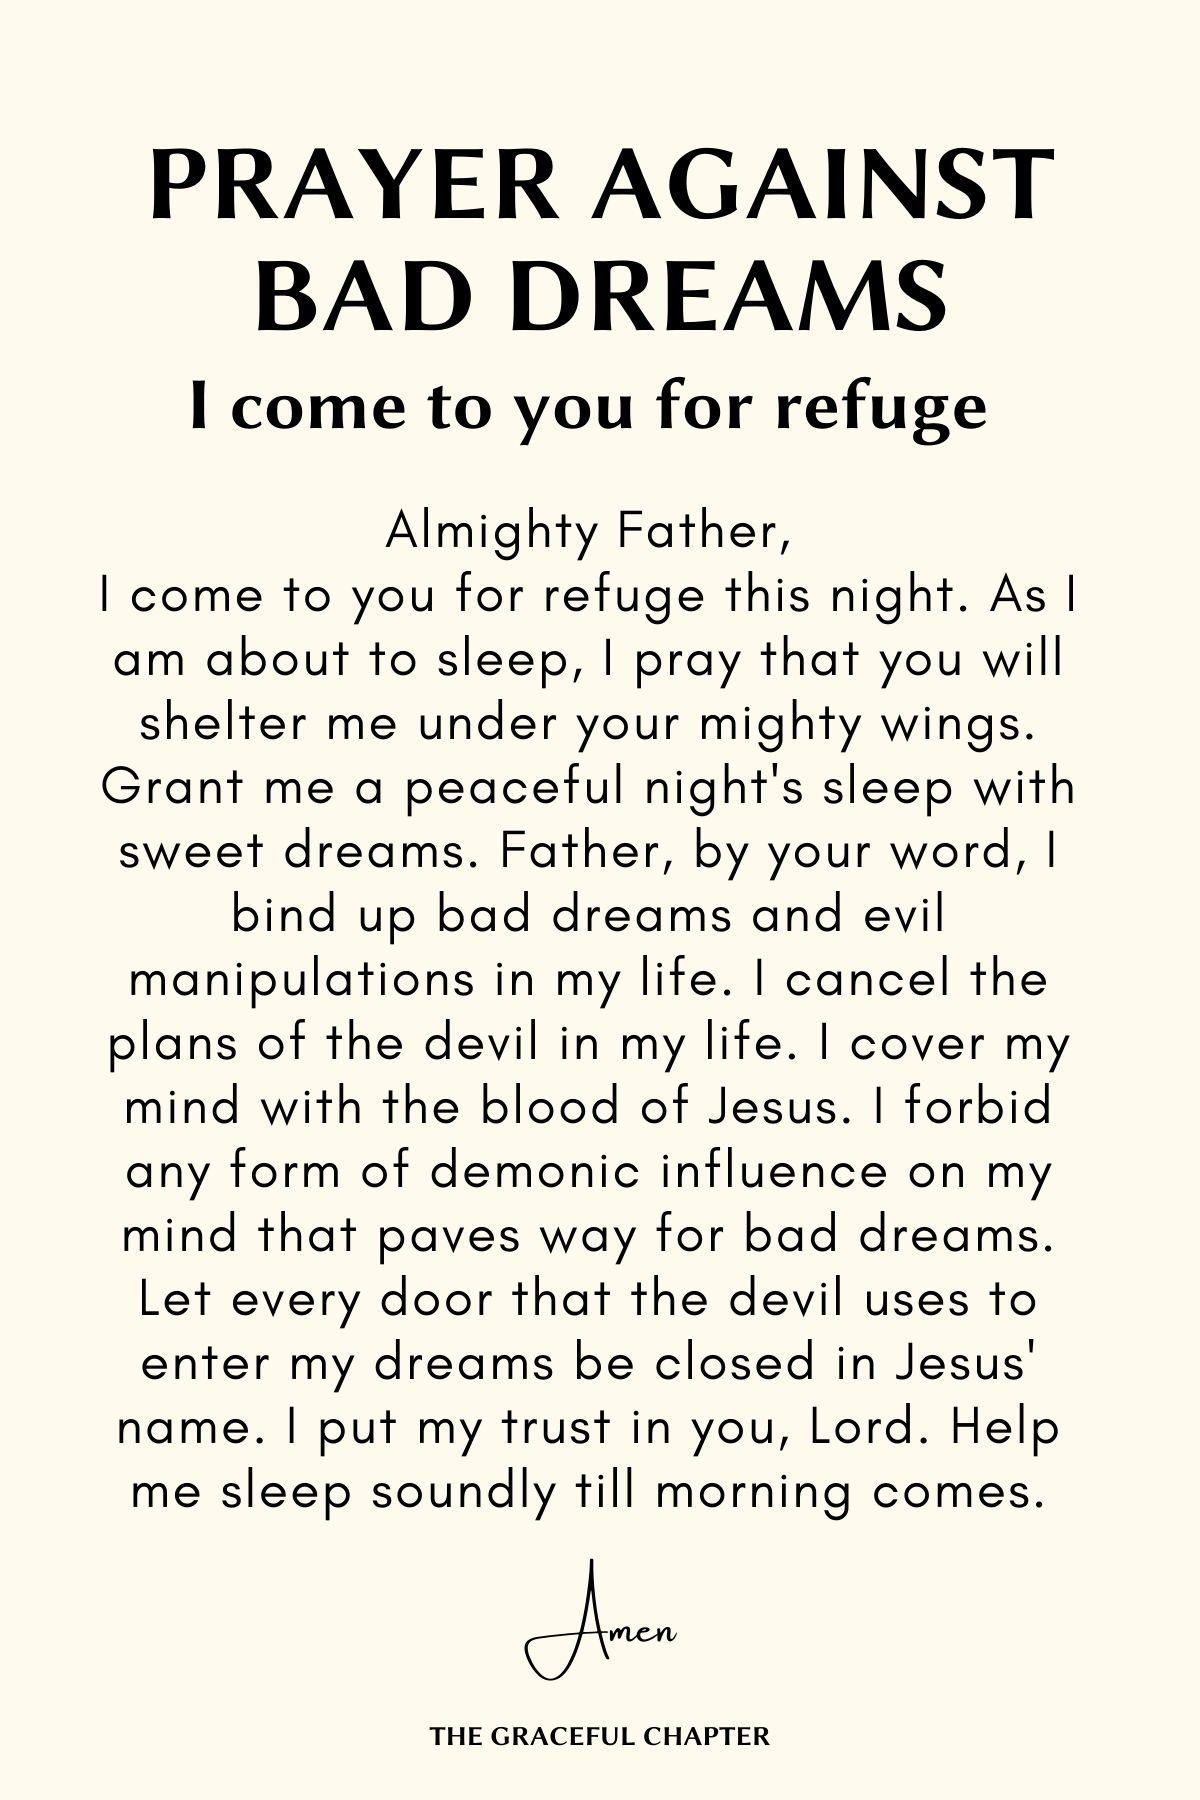 I come to you for refuge